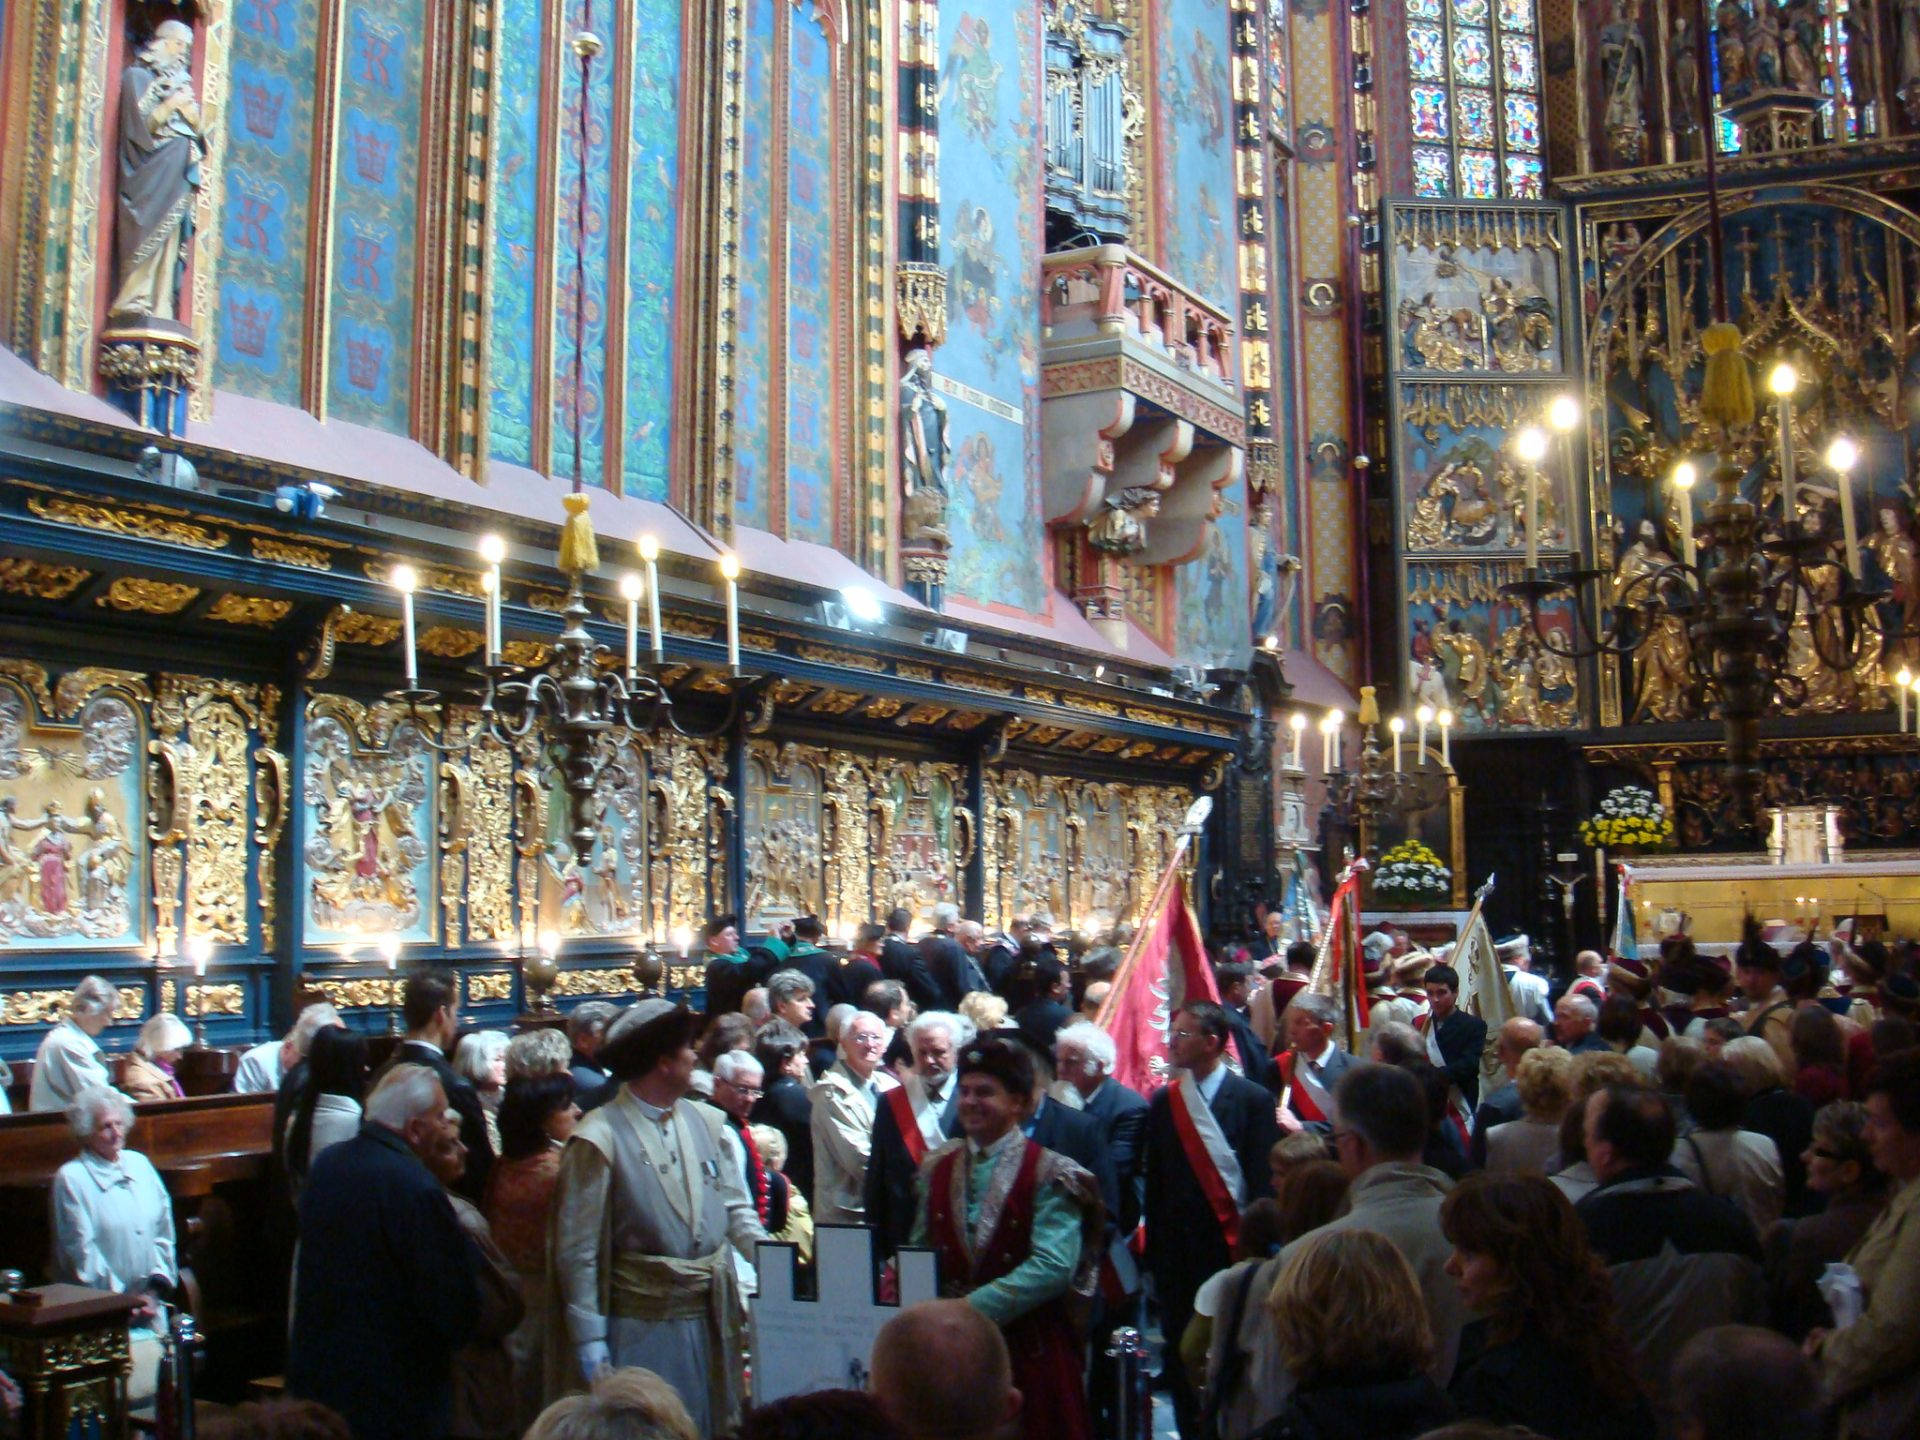 The Procession in the interior of the Basilica of the Blessed Virgin